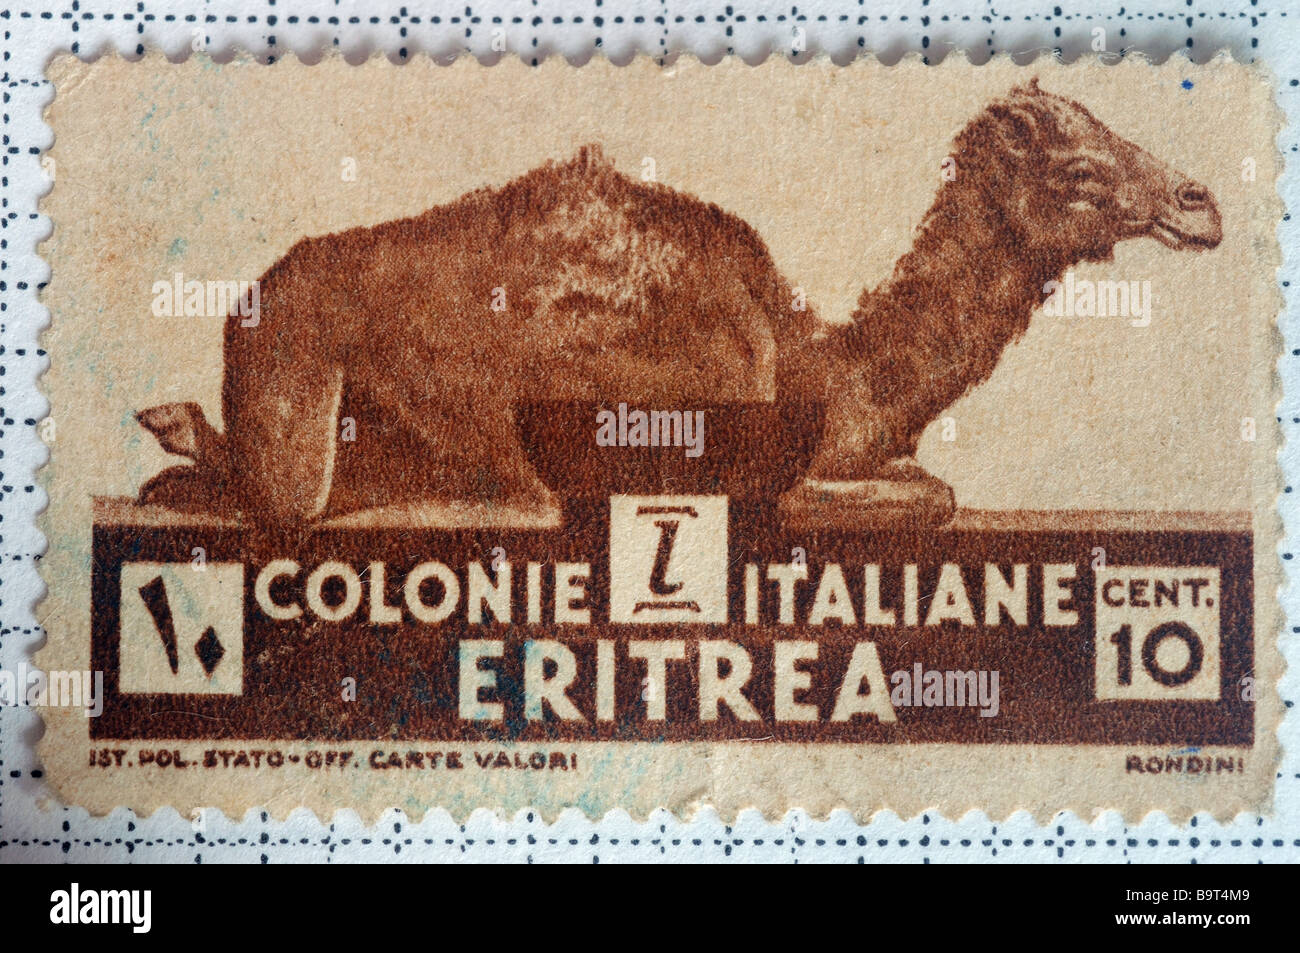 An old stamp from the Italian colony of Eritrea - Stock Image